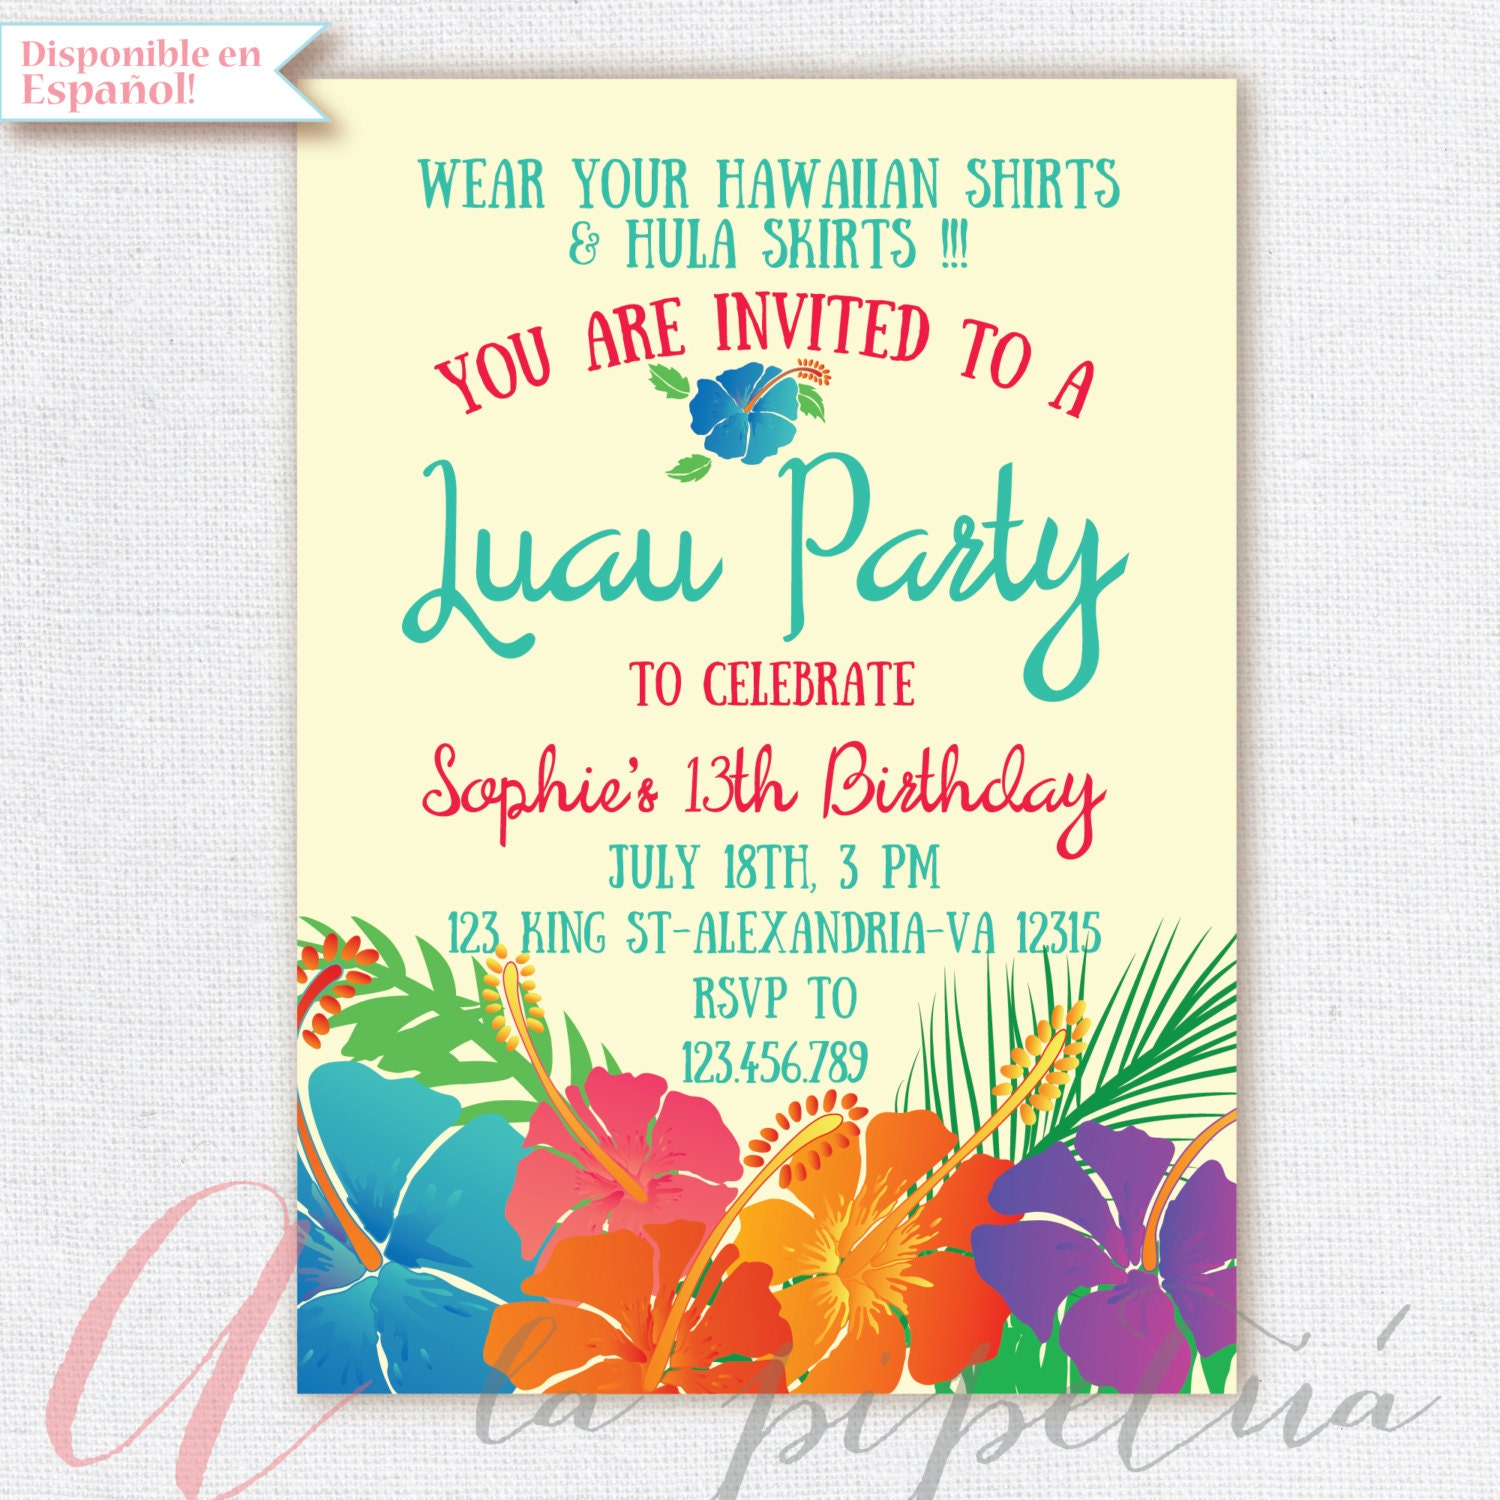 luau invitation birthday party hawaiian party invitation, invitation samples